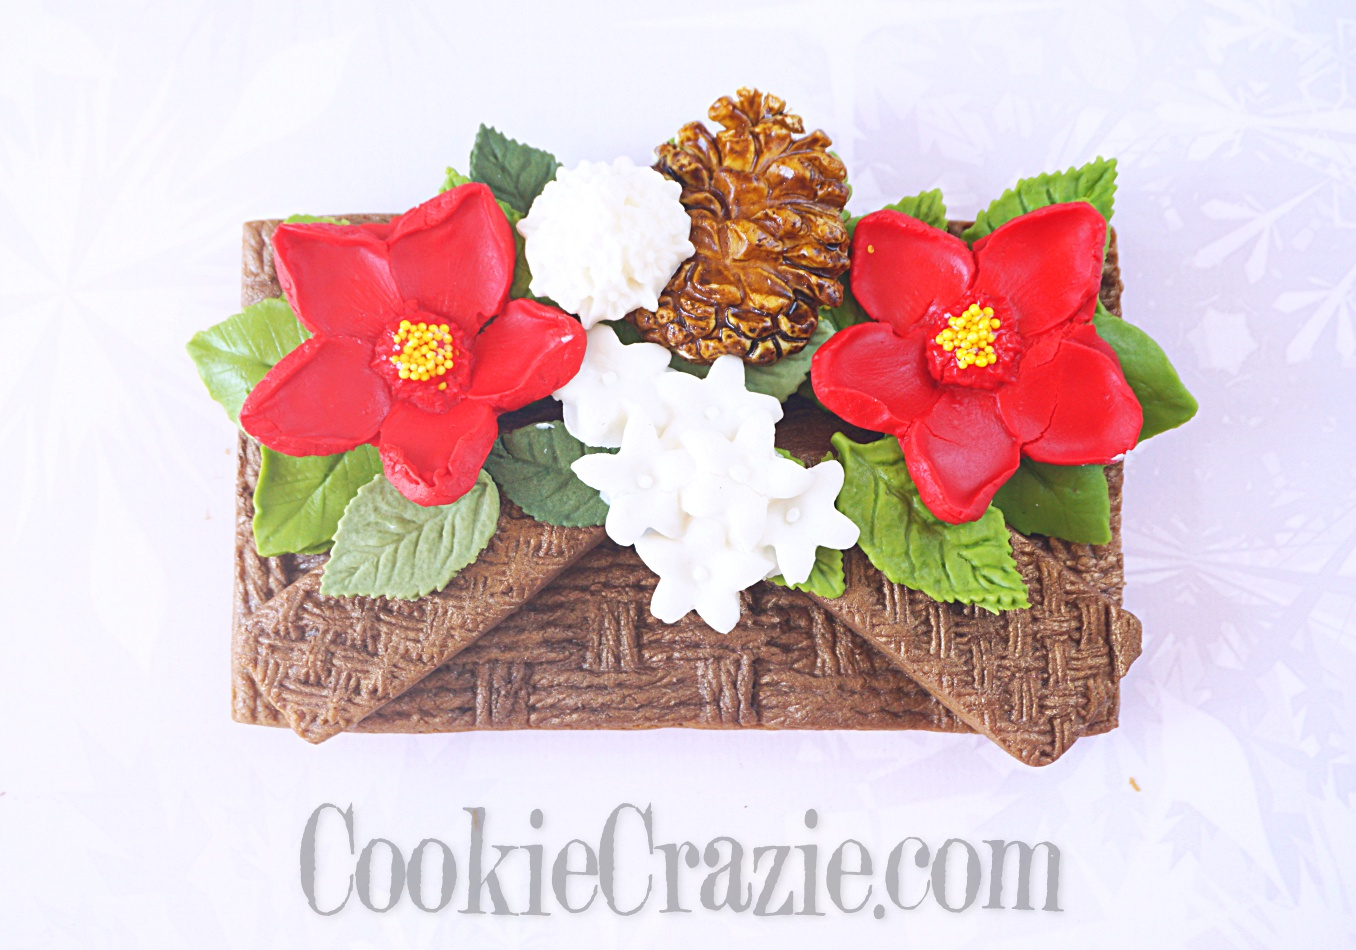 Christmas Basket Bouquet Decorated Sugar Cookie YouTube video  HERE